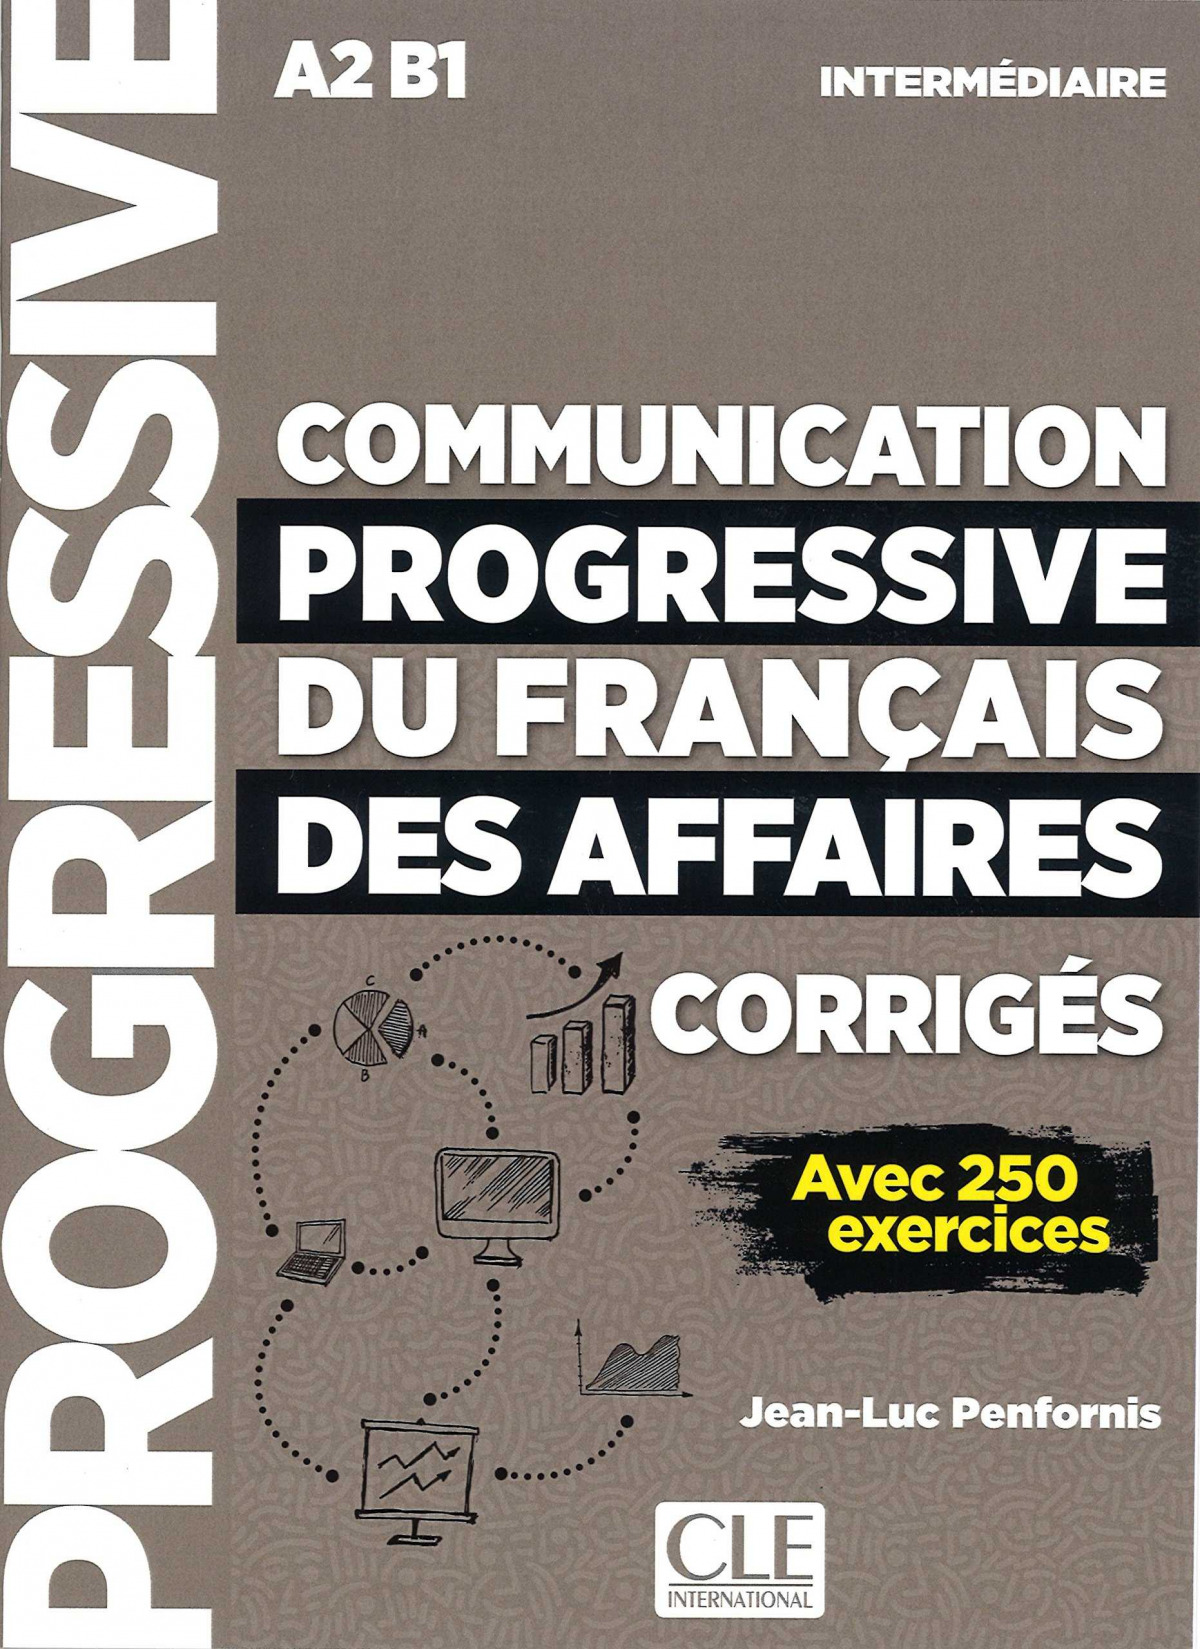 (INTERMED).COMMUNICATION PROGRESSIVE FRANÇAIS AFFAIRES